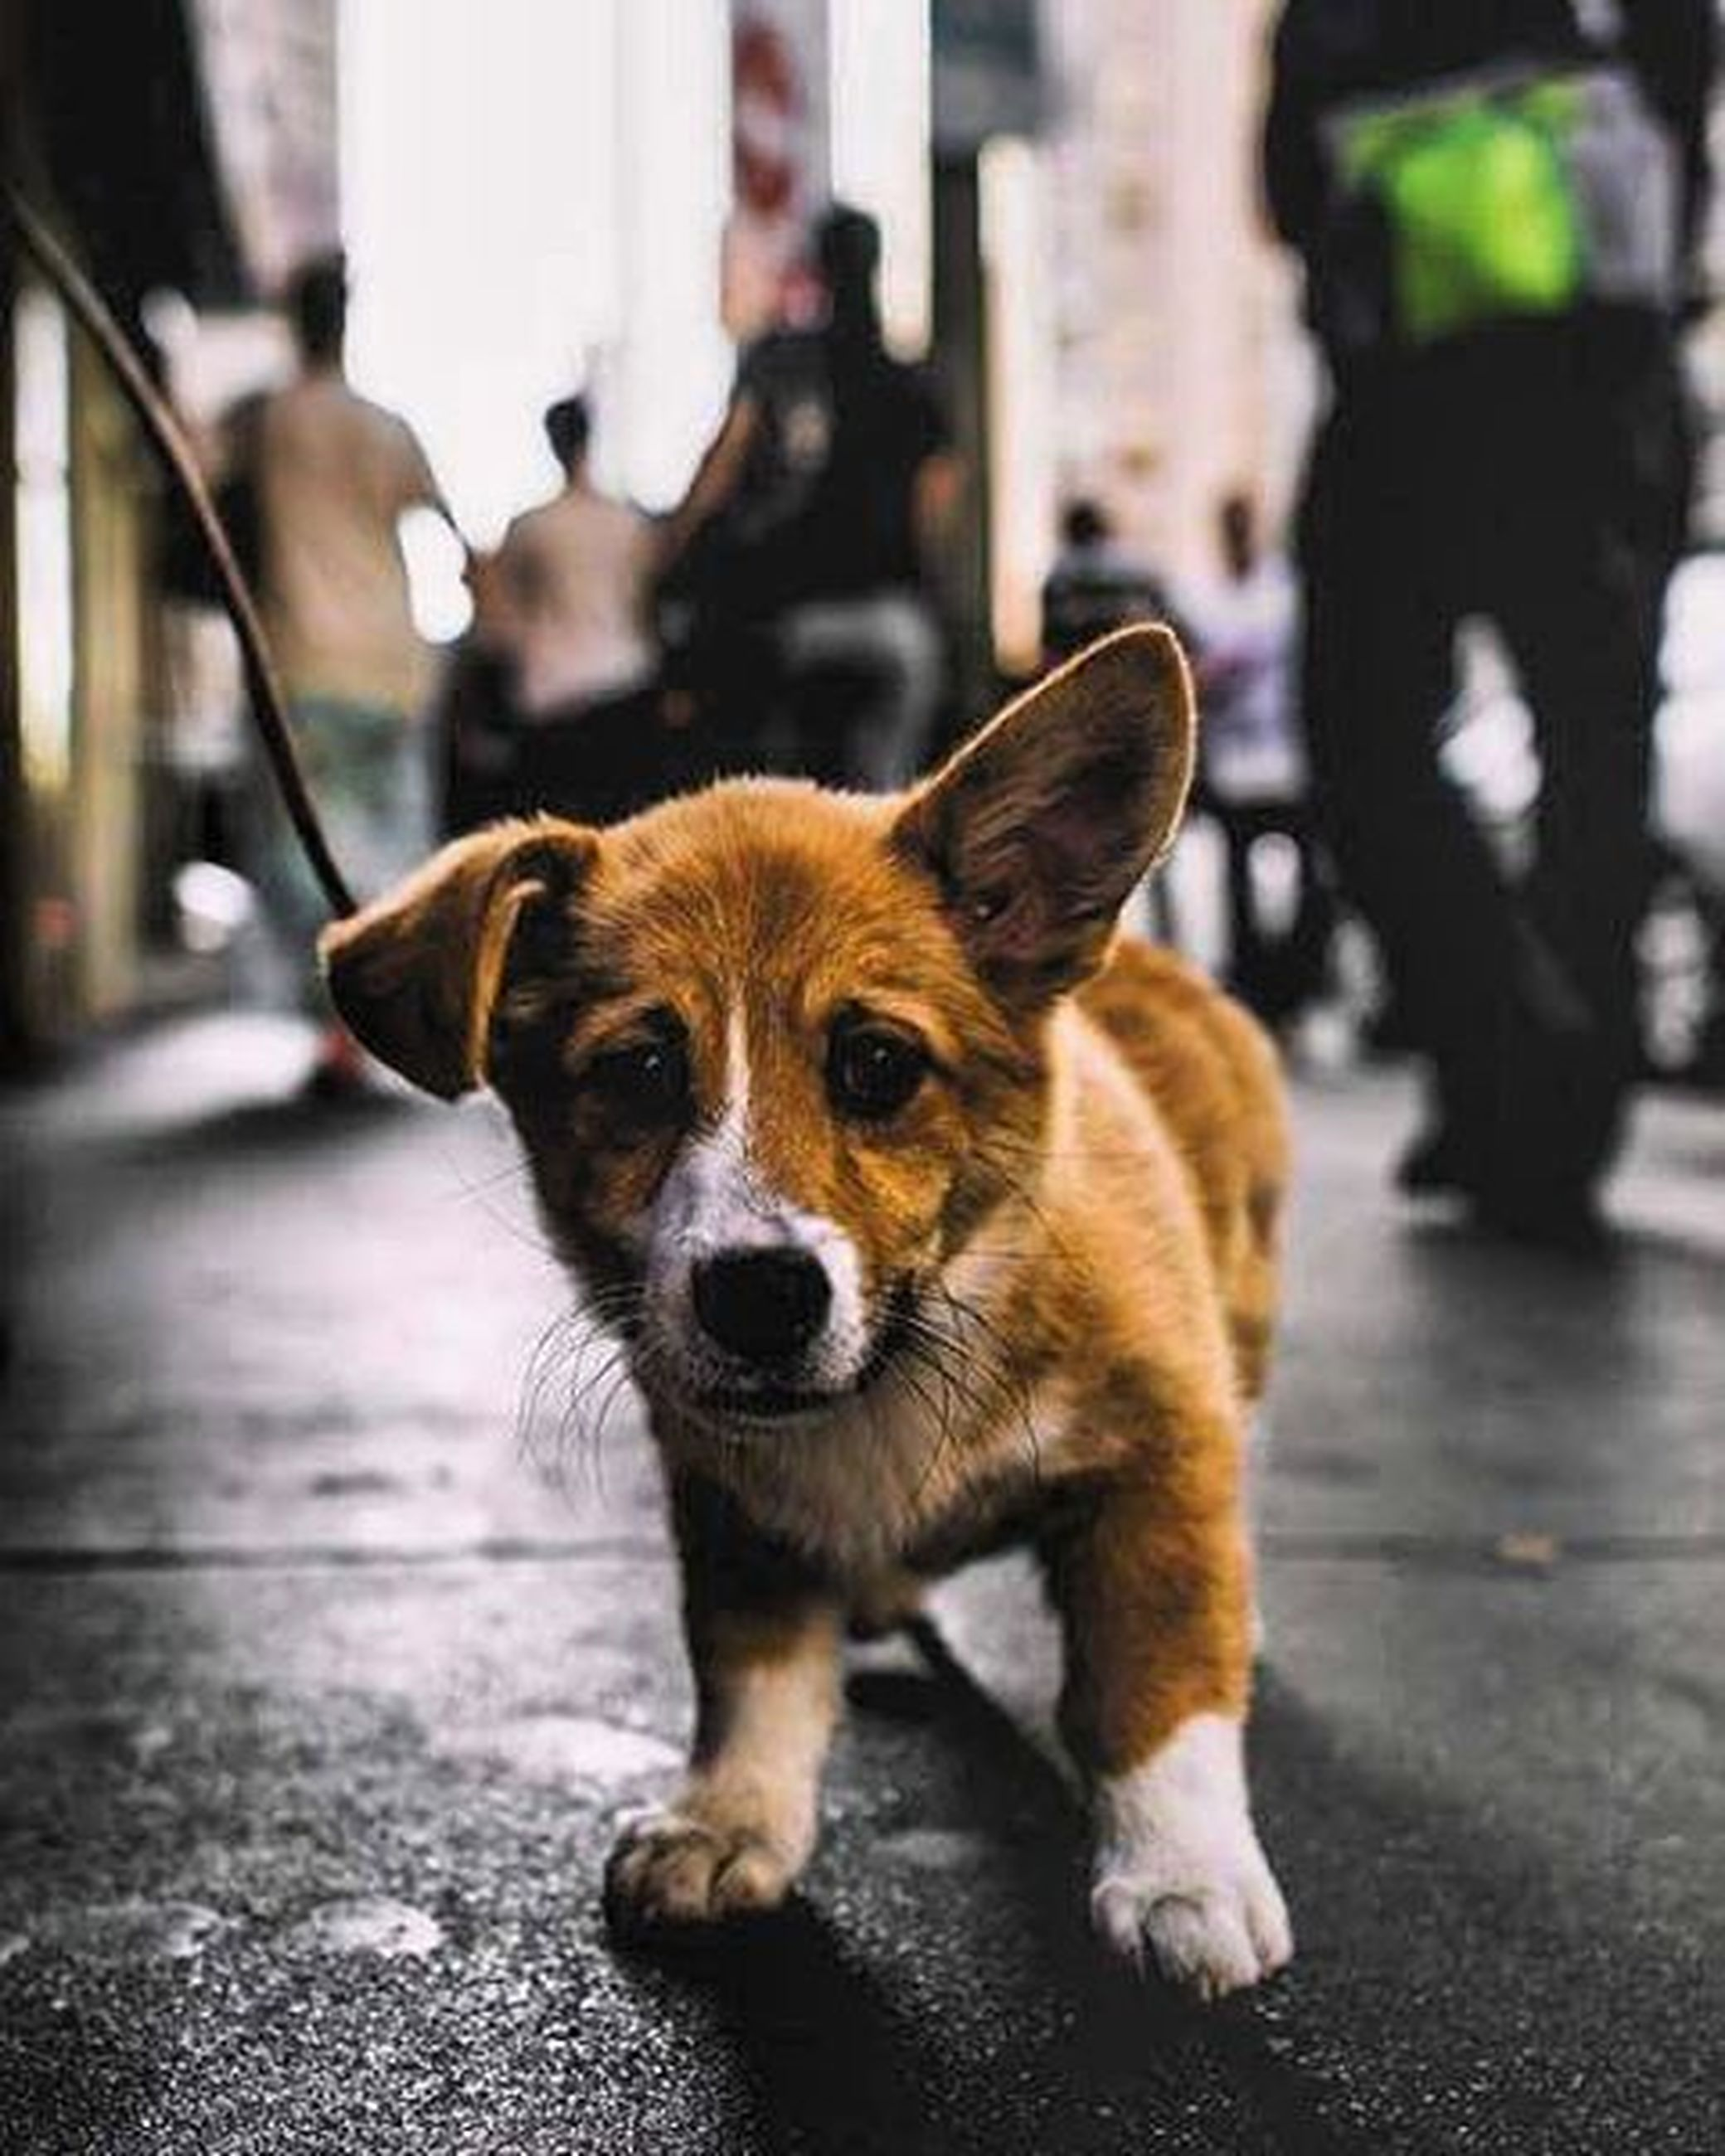 pets, dog, domestic animals, animal themes, one animal, mammal, portrait, looking at camera, focus on foreground, street, sitting, incidental people, pet leash, front view, day, close-up, sidewalk, indoors, standing, full length